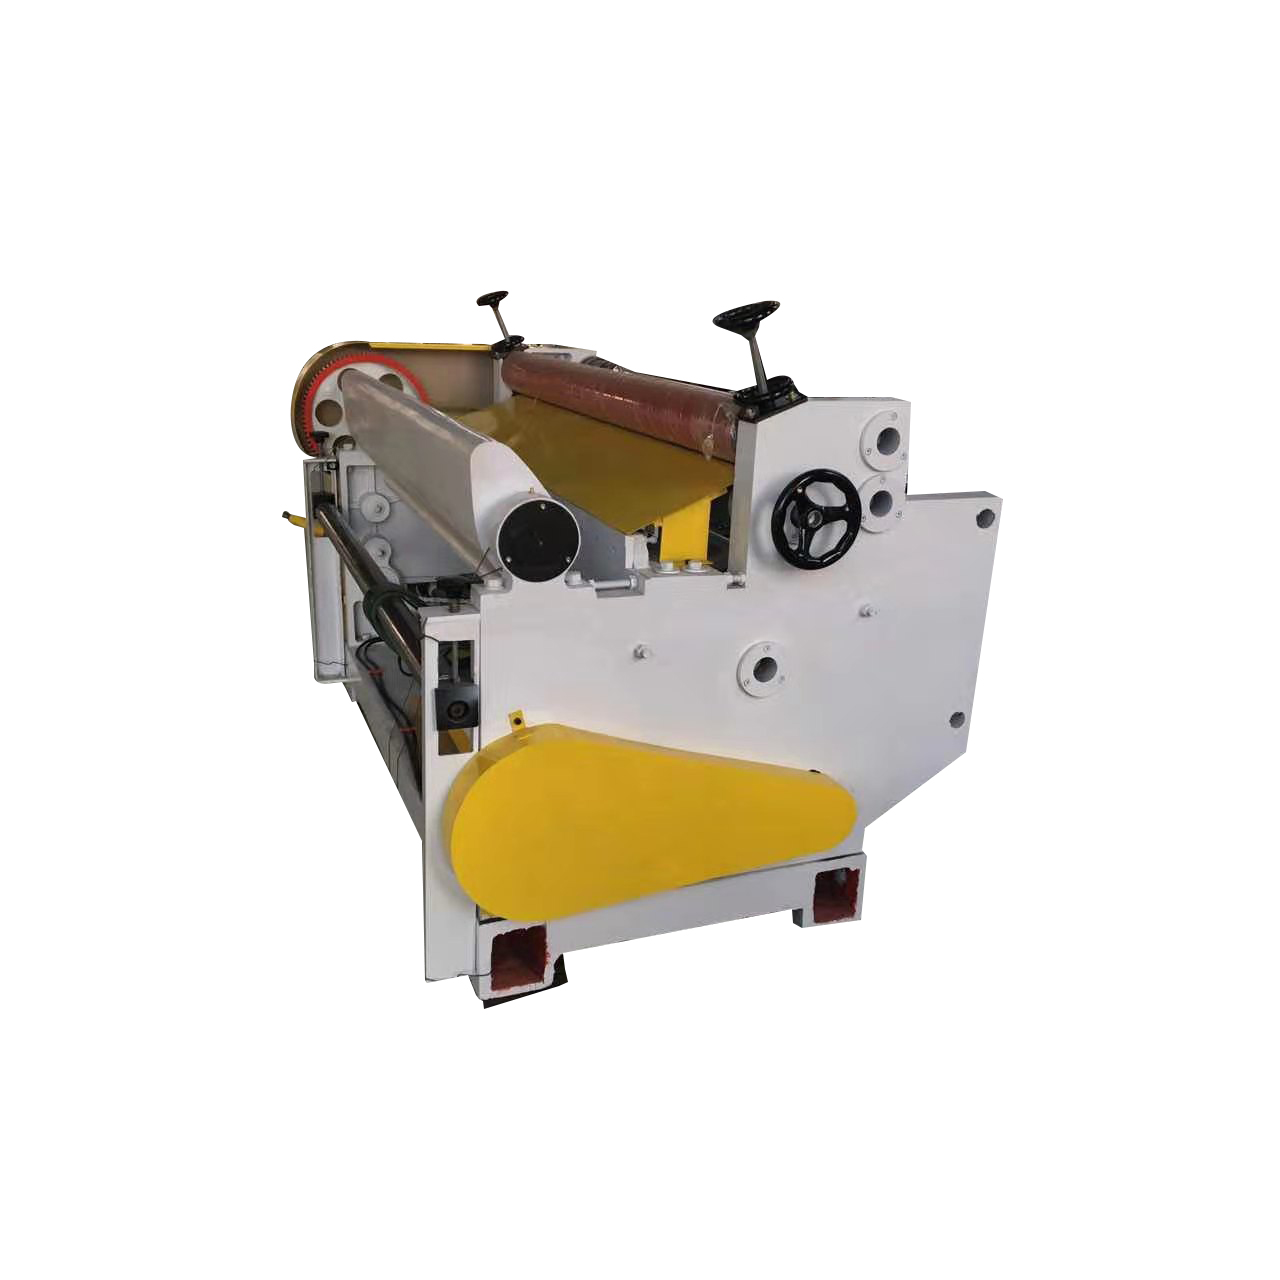 OEM/ODM Manufacturer Cut-Off Saw -